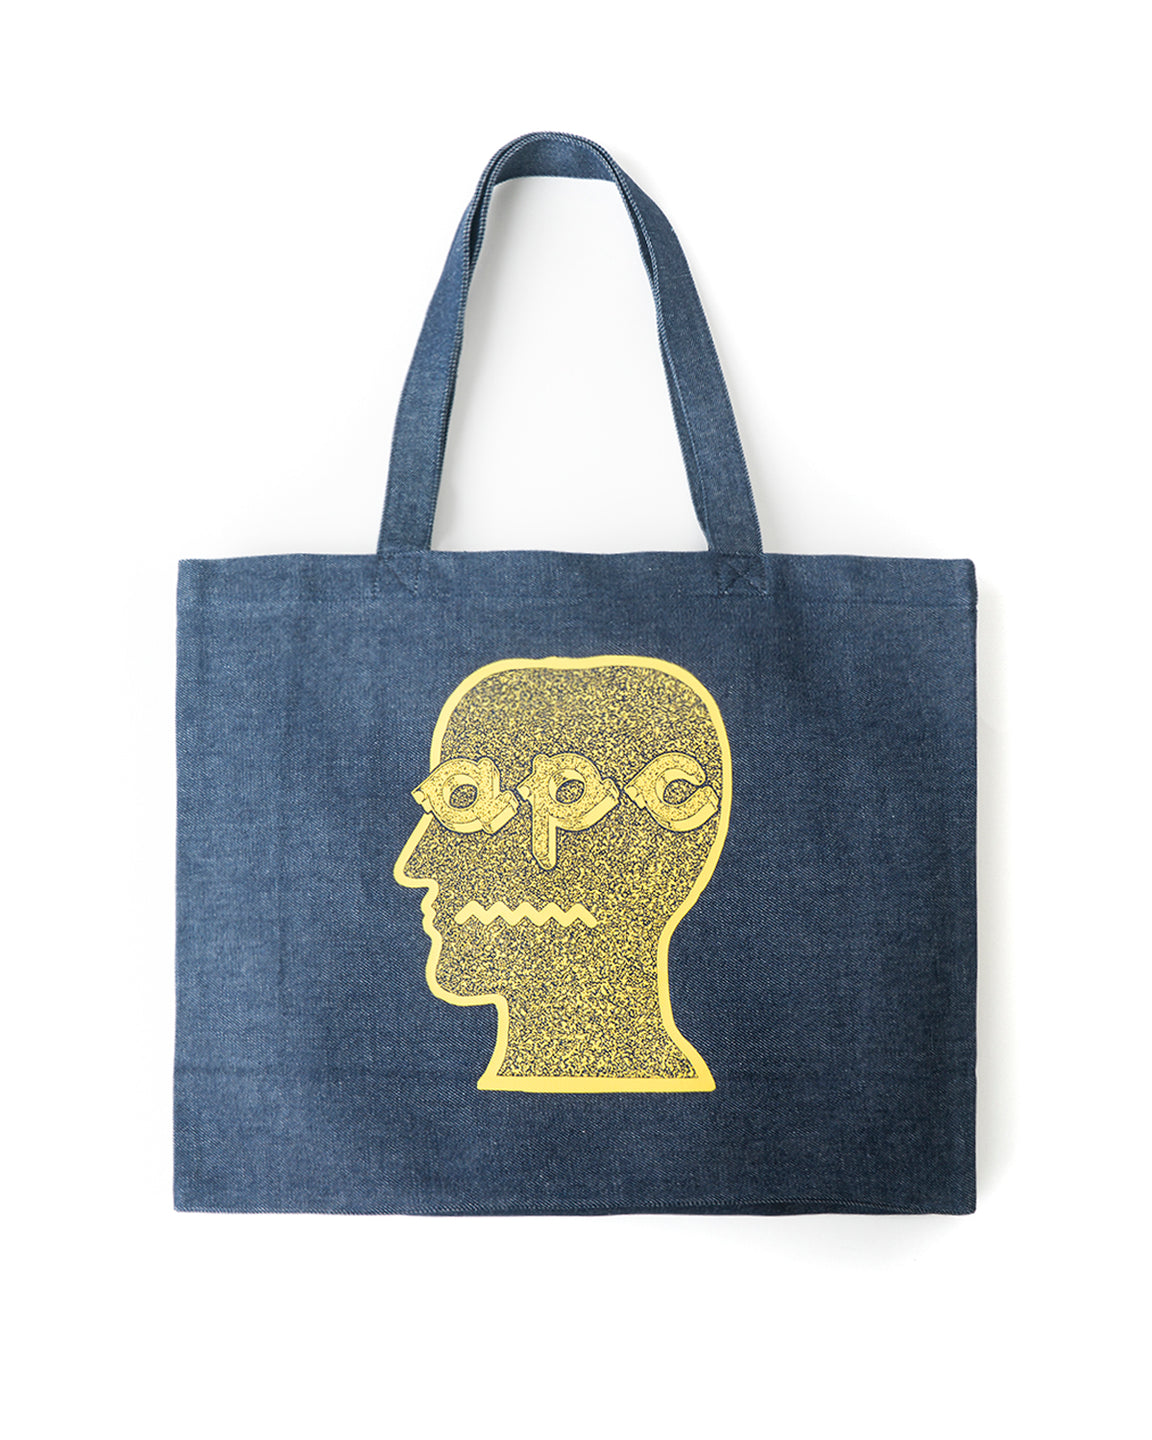 Logo Head Shopping Bag A.P.C. x Brain Dead - Denim/Yellow